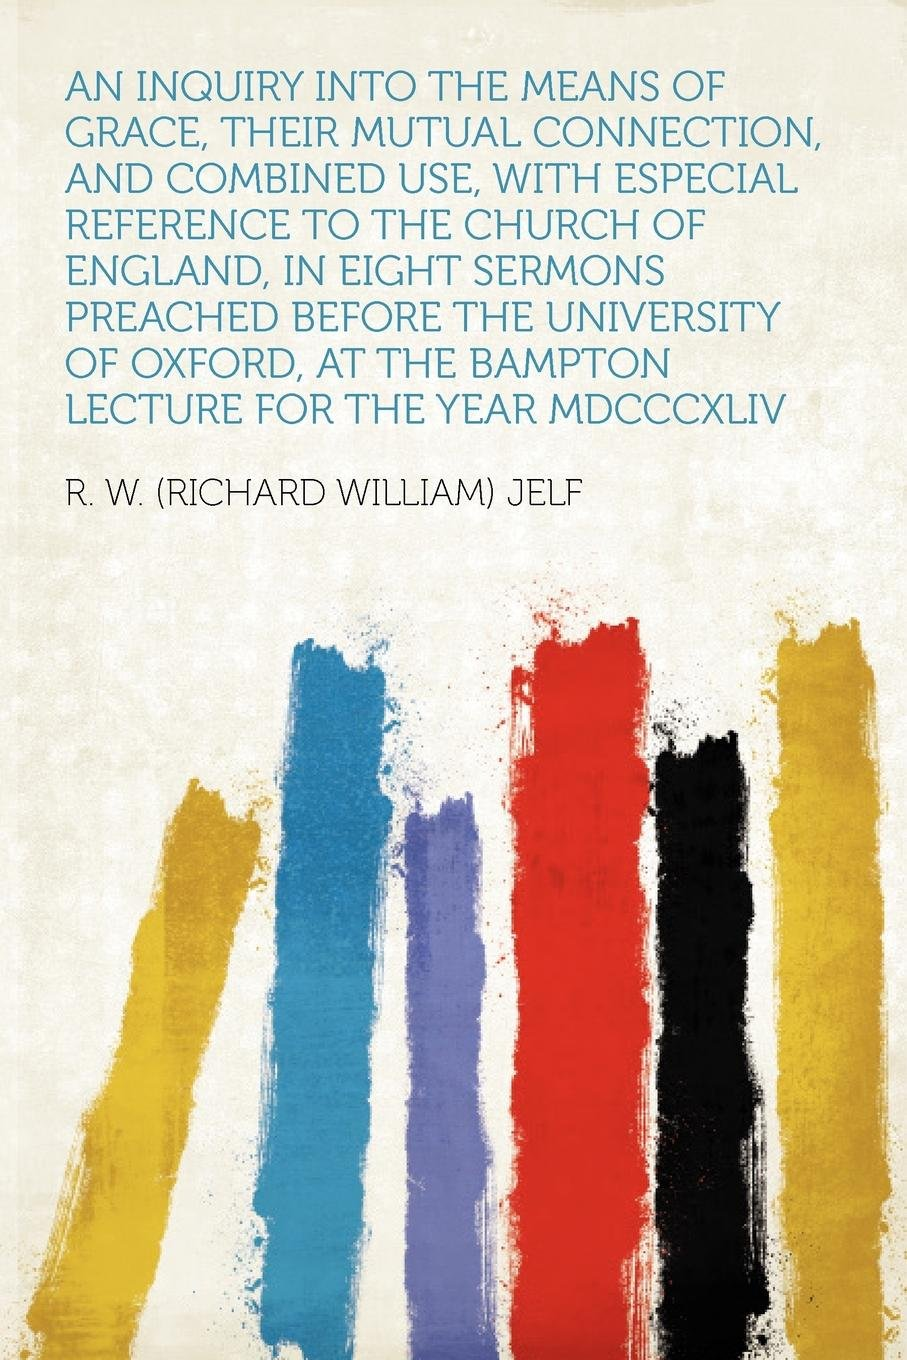 An Inquiry Into the Means of Grace, Their Mutual Connection, and Combined Use, With Especial Reference to the Church of England, in Eight Sermons at the Bampton Lecture for the Year MDCCCXLIV pdf